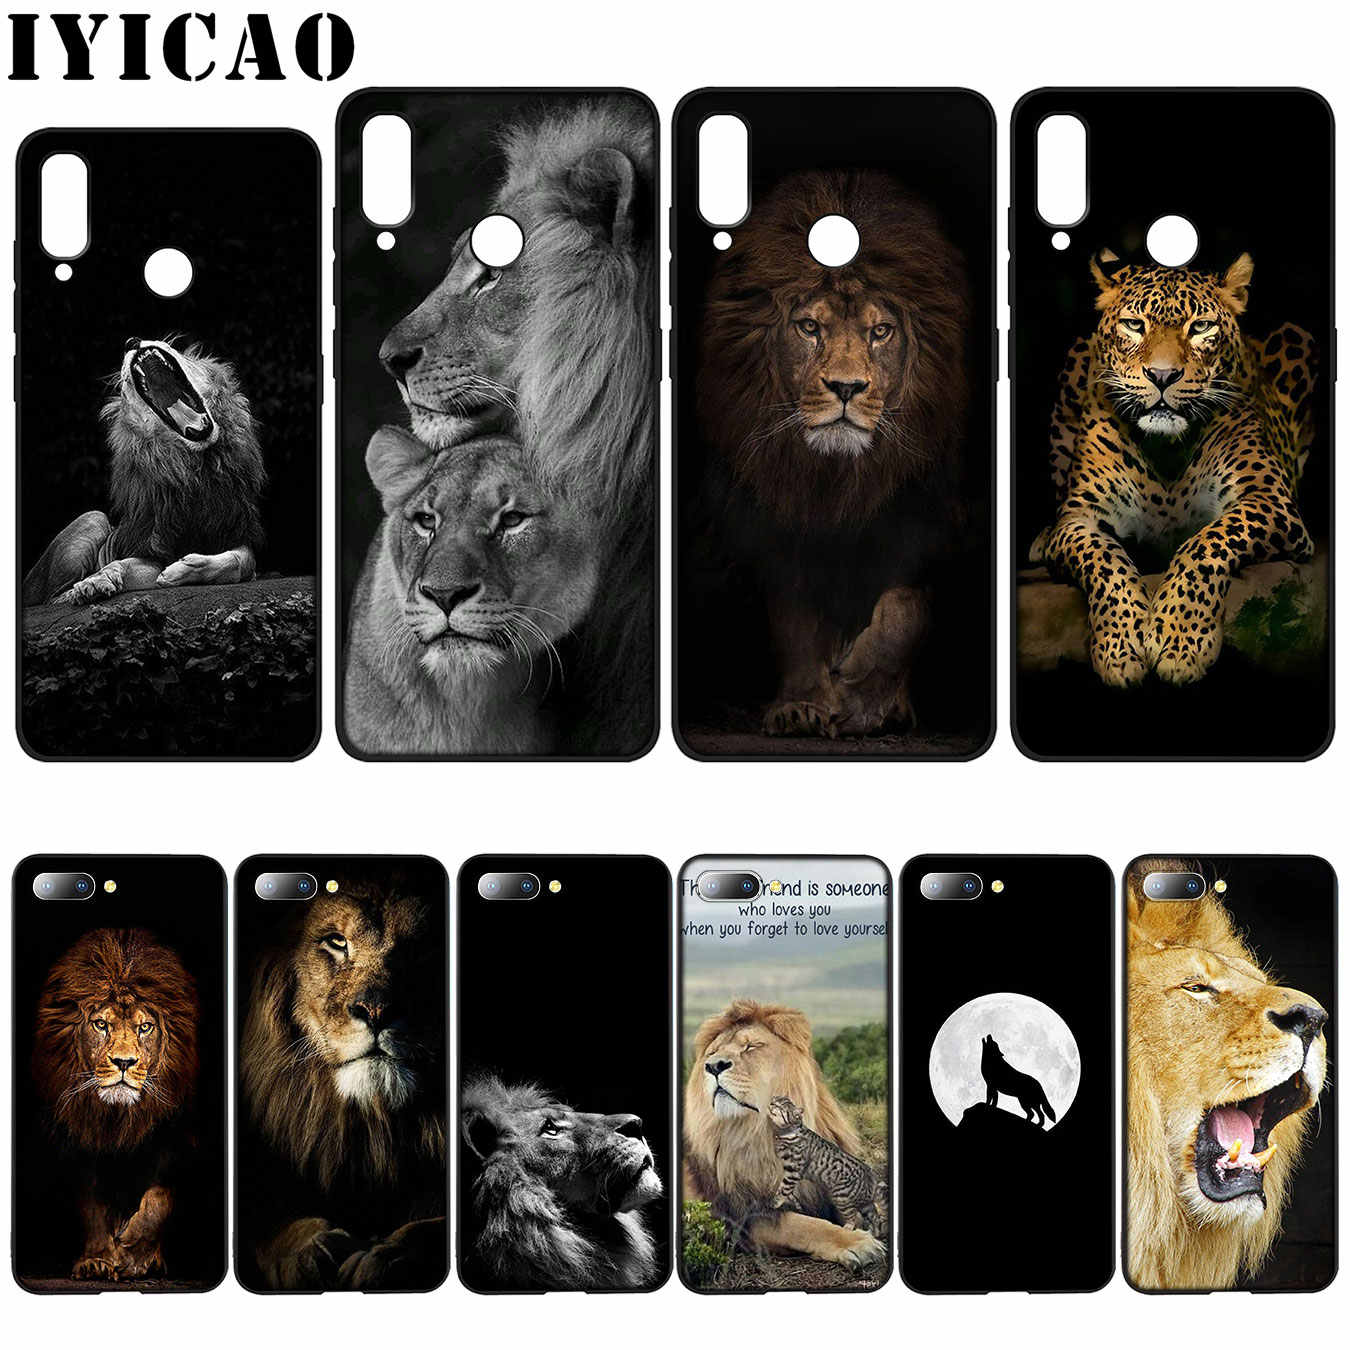 IYICAO Animal king tiger  lion Silicone Soft Case for Huawei Y7 Y6 Prime Y9 2018 Honor 8C 8X 8 9 10 Lite 6A 7C 7X 7A Pro